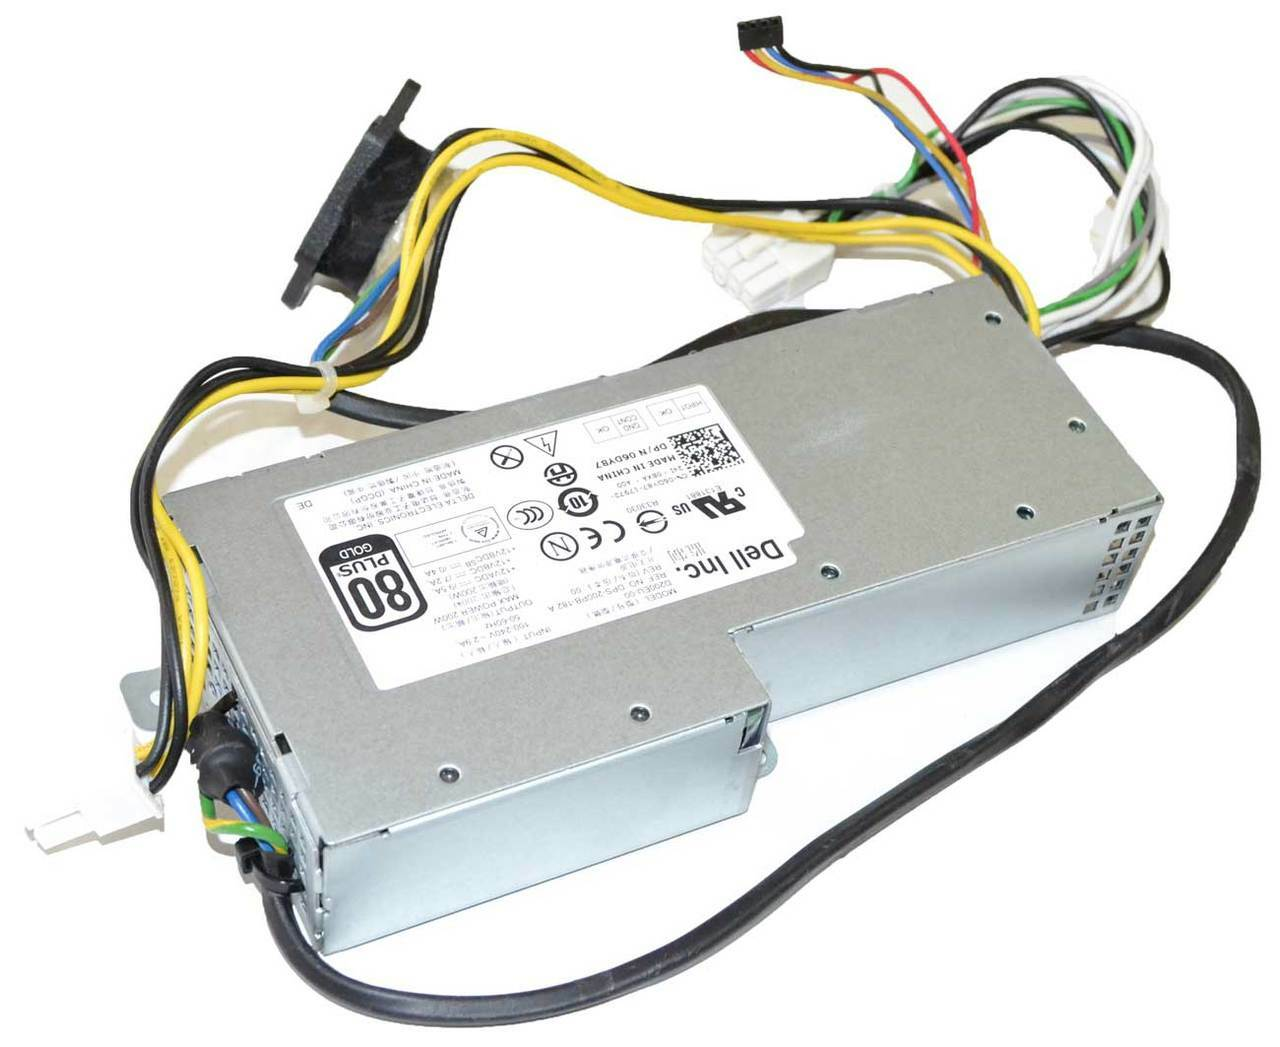 Genuine 200W Power Supply For Optiplex 9010 All-in-One PC D200EU-